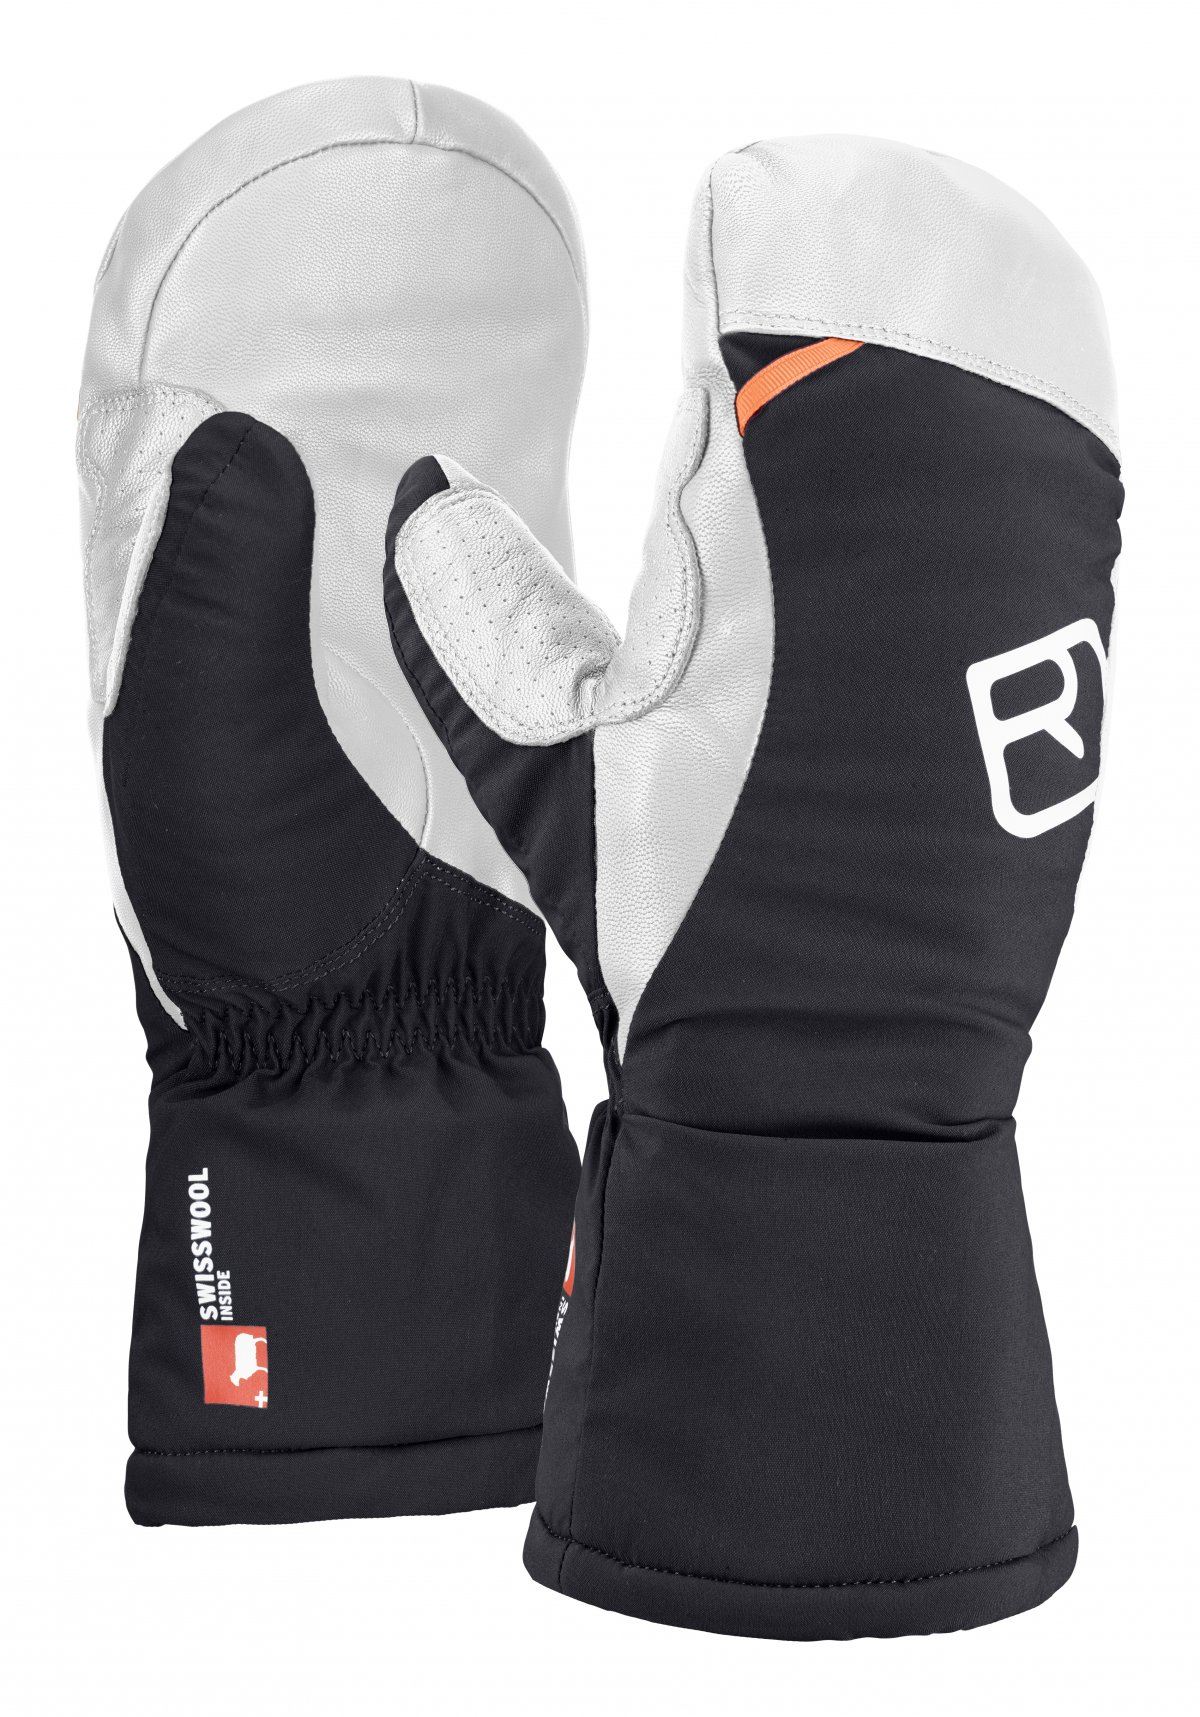 oRTOVOX FREERIDE GLOVES£114 - Lined with the finest merino wool and special insulation padding, cut with a high cuff to keep snow out,these gloves ensure your hands are always dry and warm.Note - Available in mens sizing so go down for a snug fit.